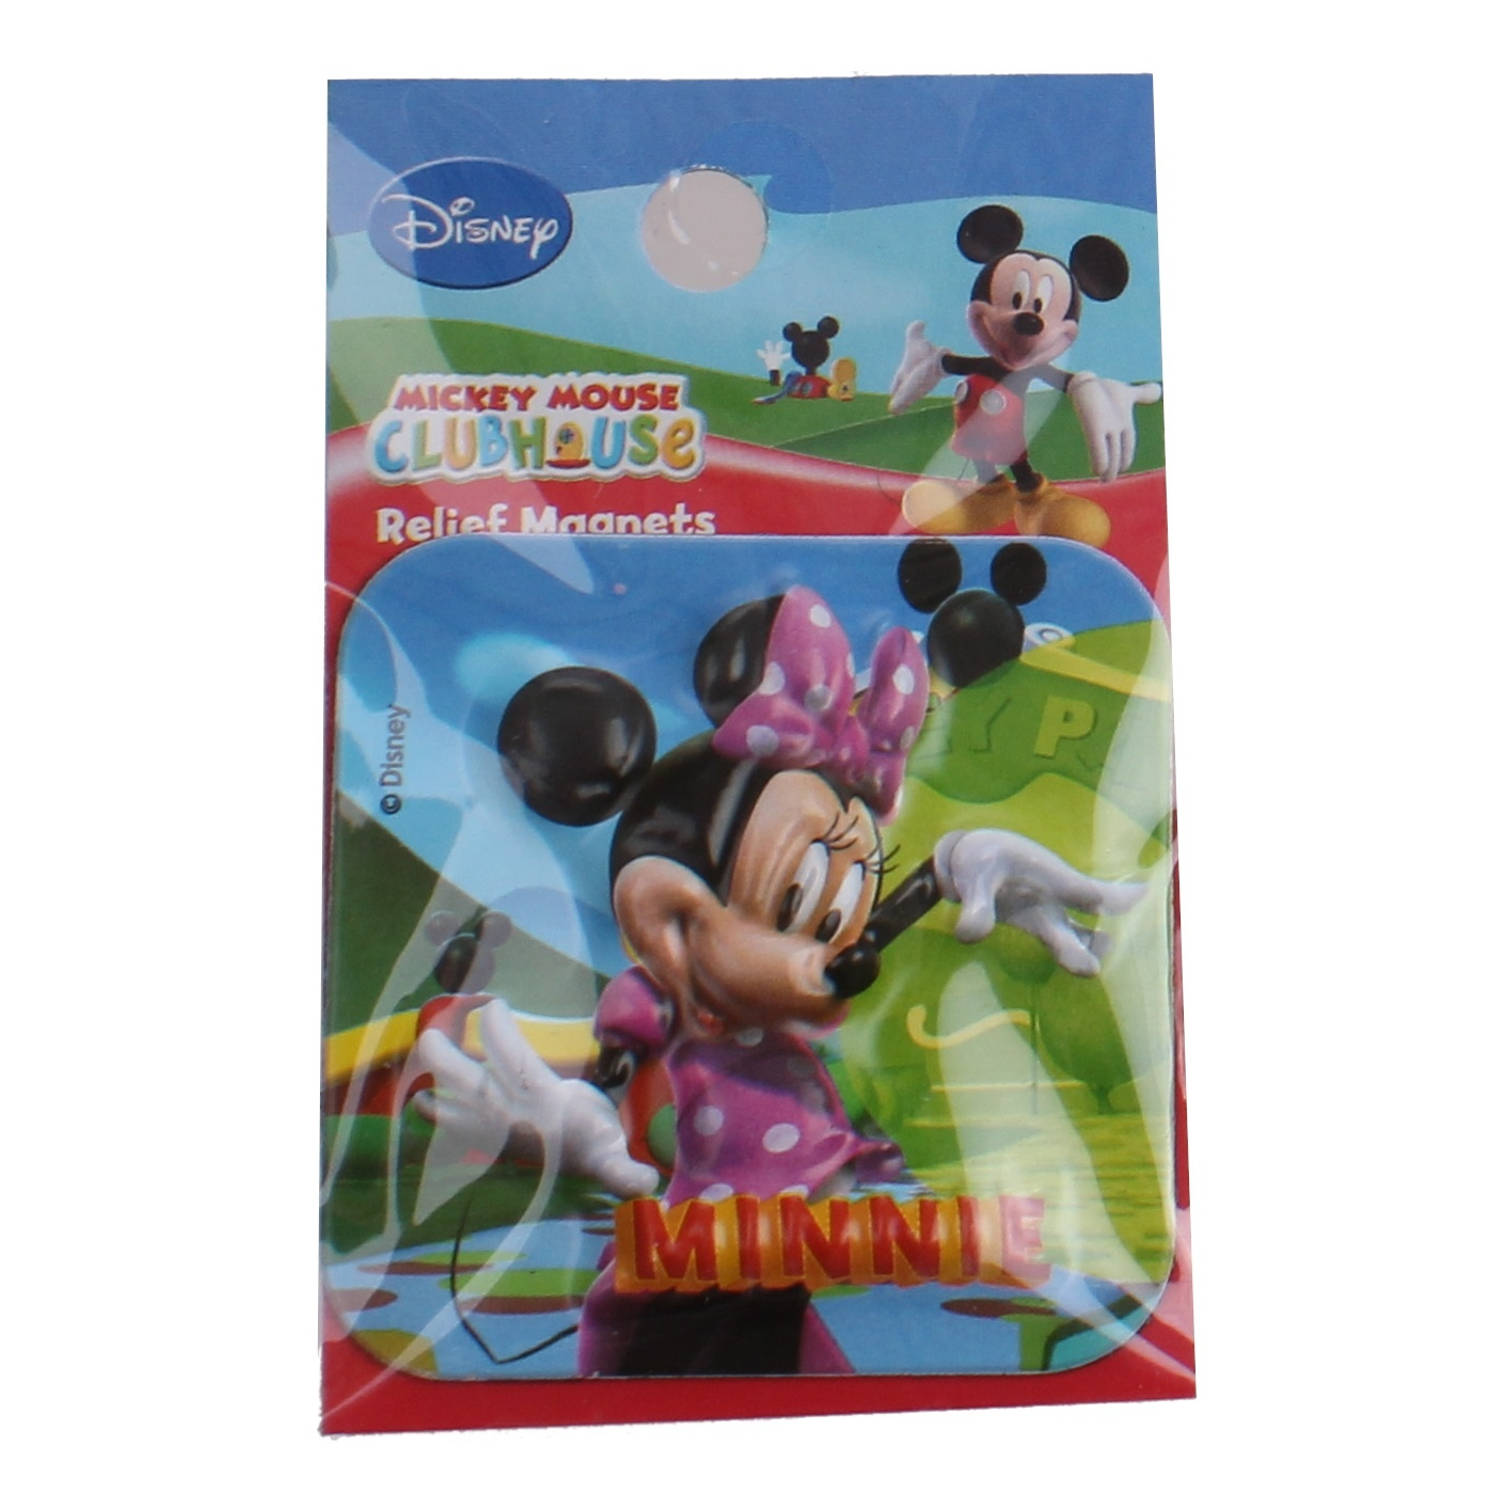 Korting Disney Mickey Mouse Clubhouse Magneet ( 12)